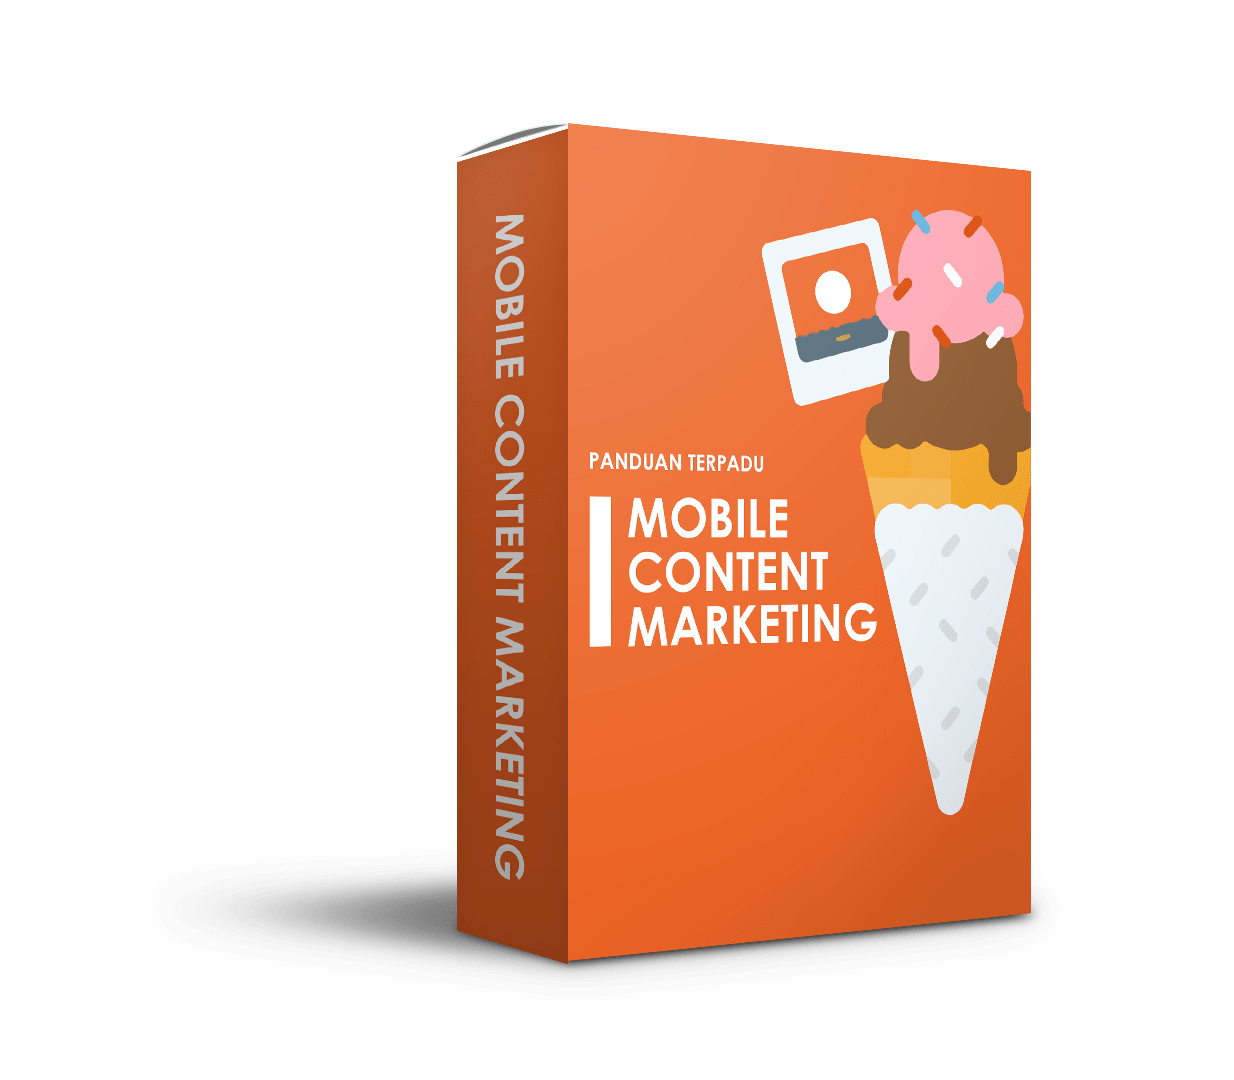 Mobile Content Marketing